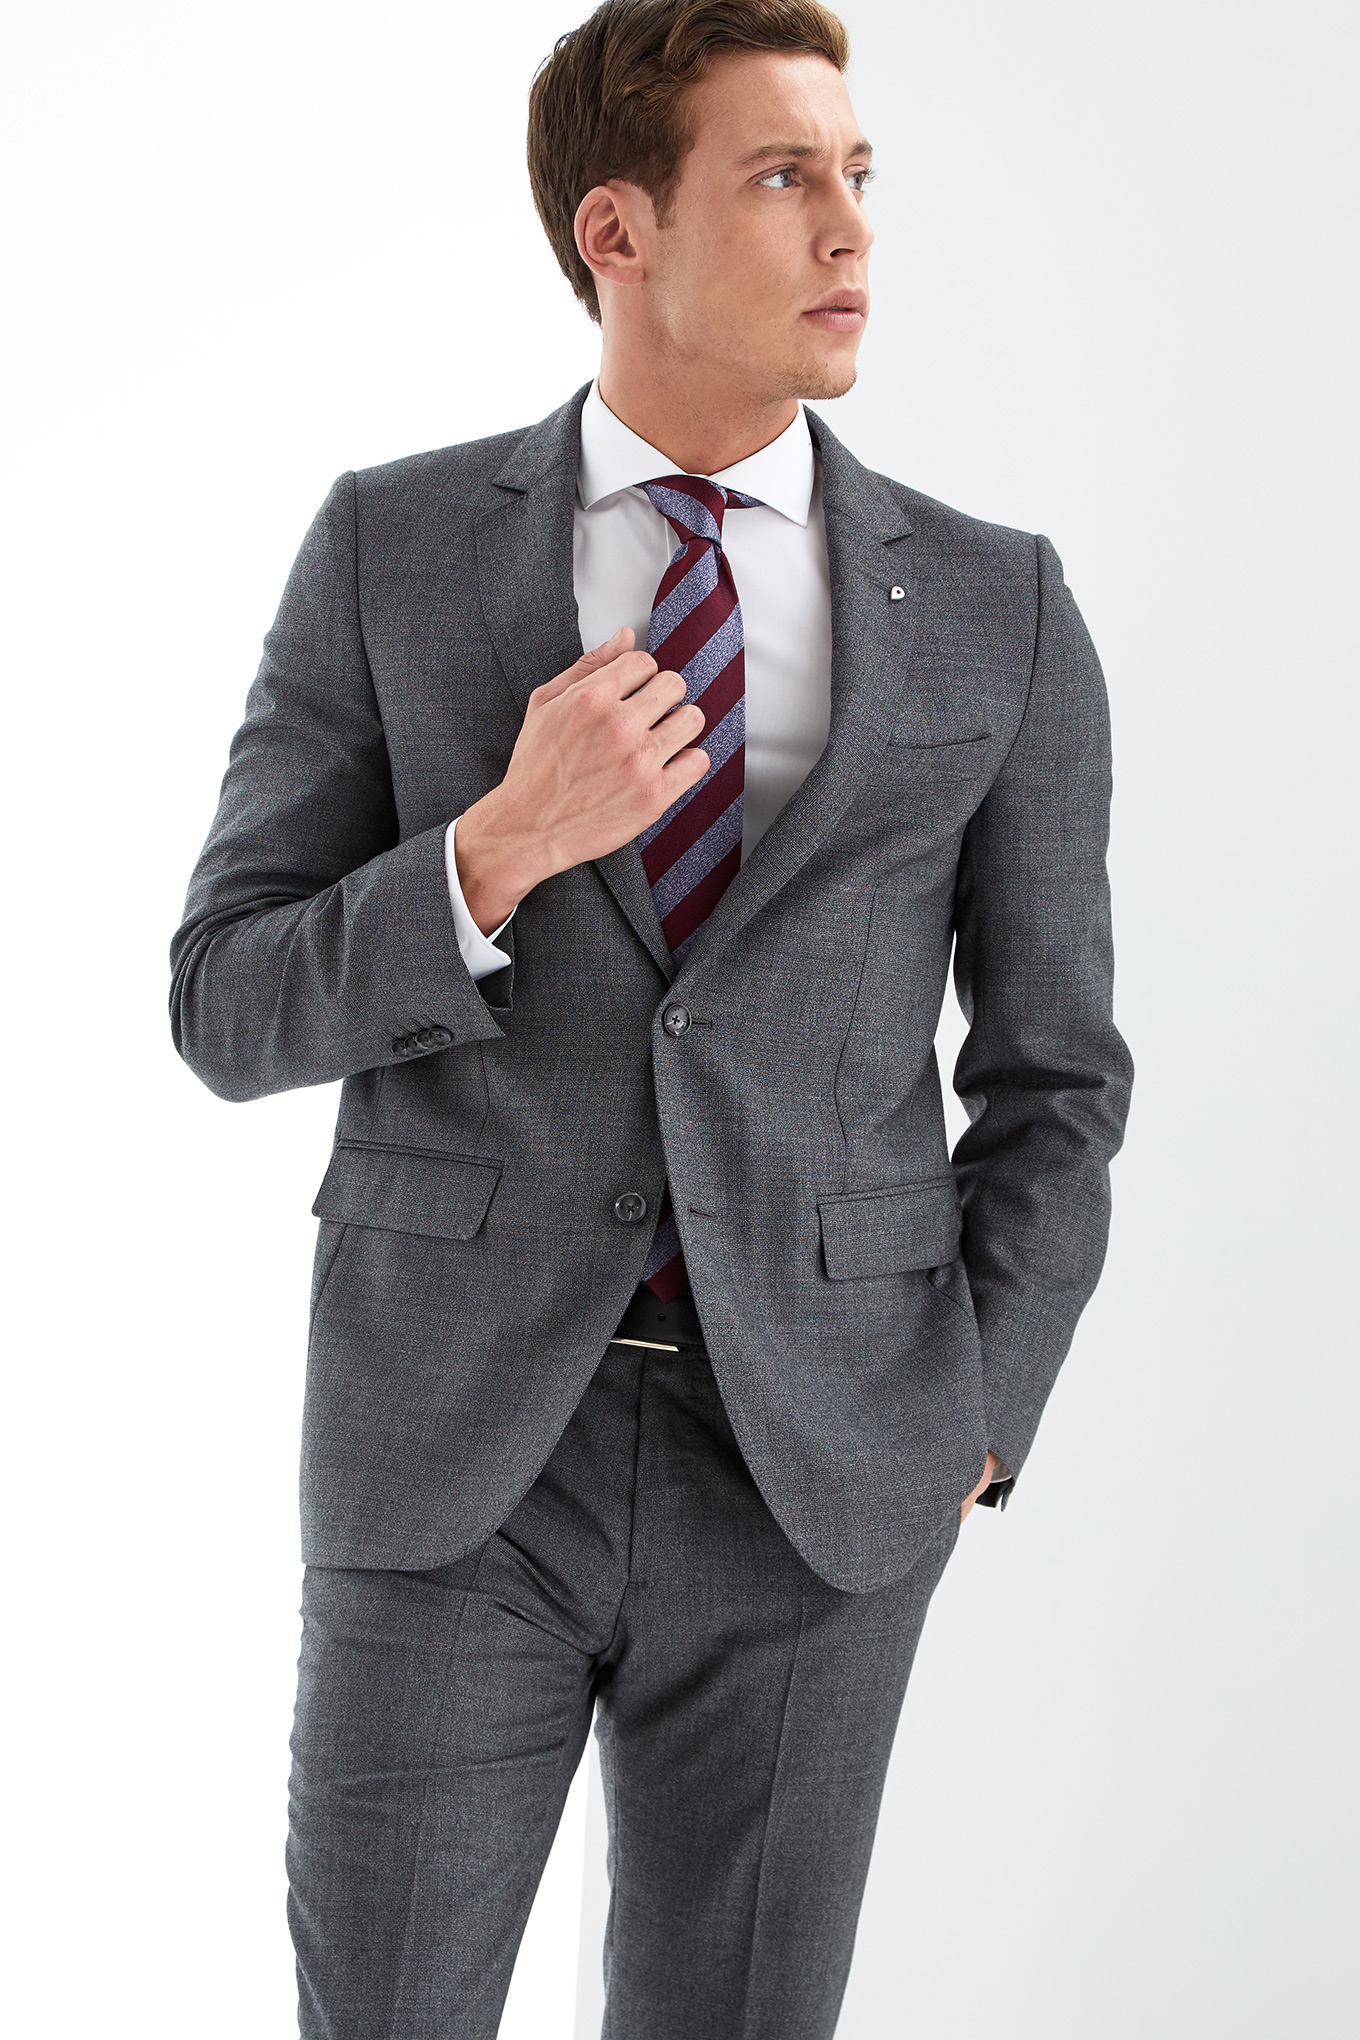 Suit Dark Grey Classic Man